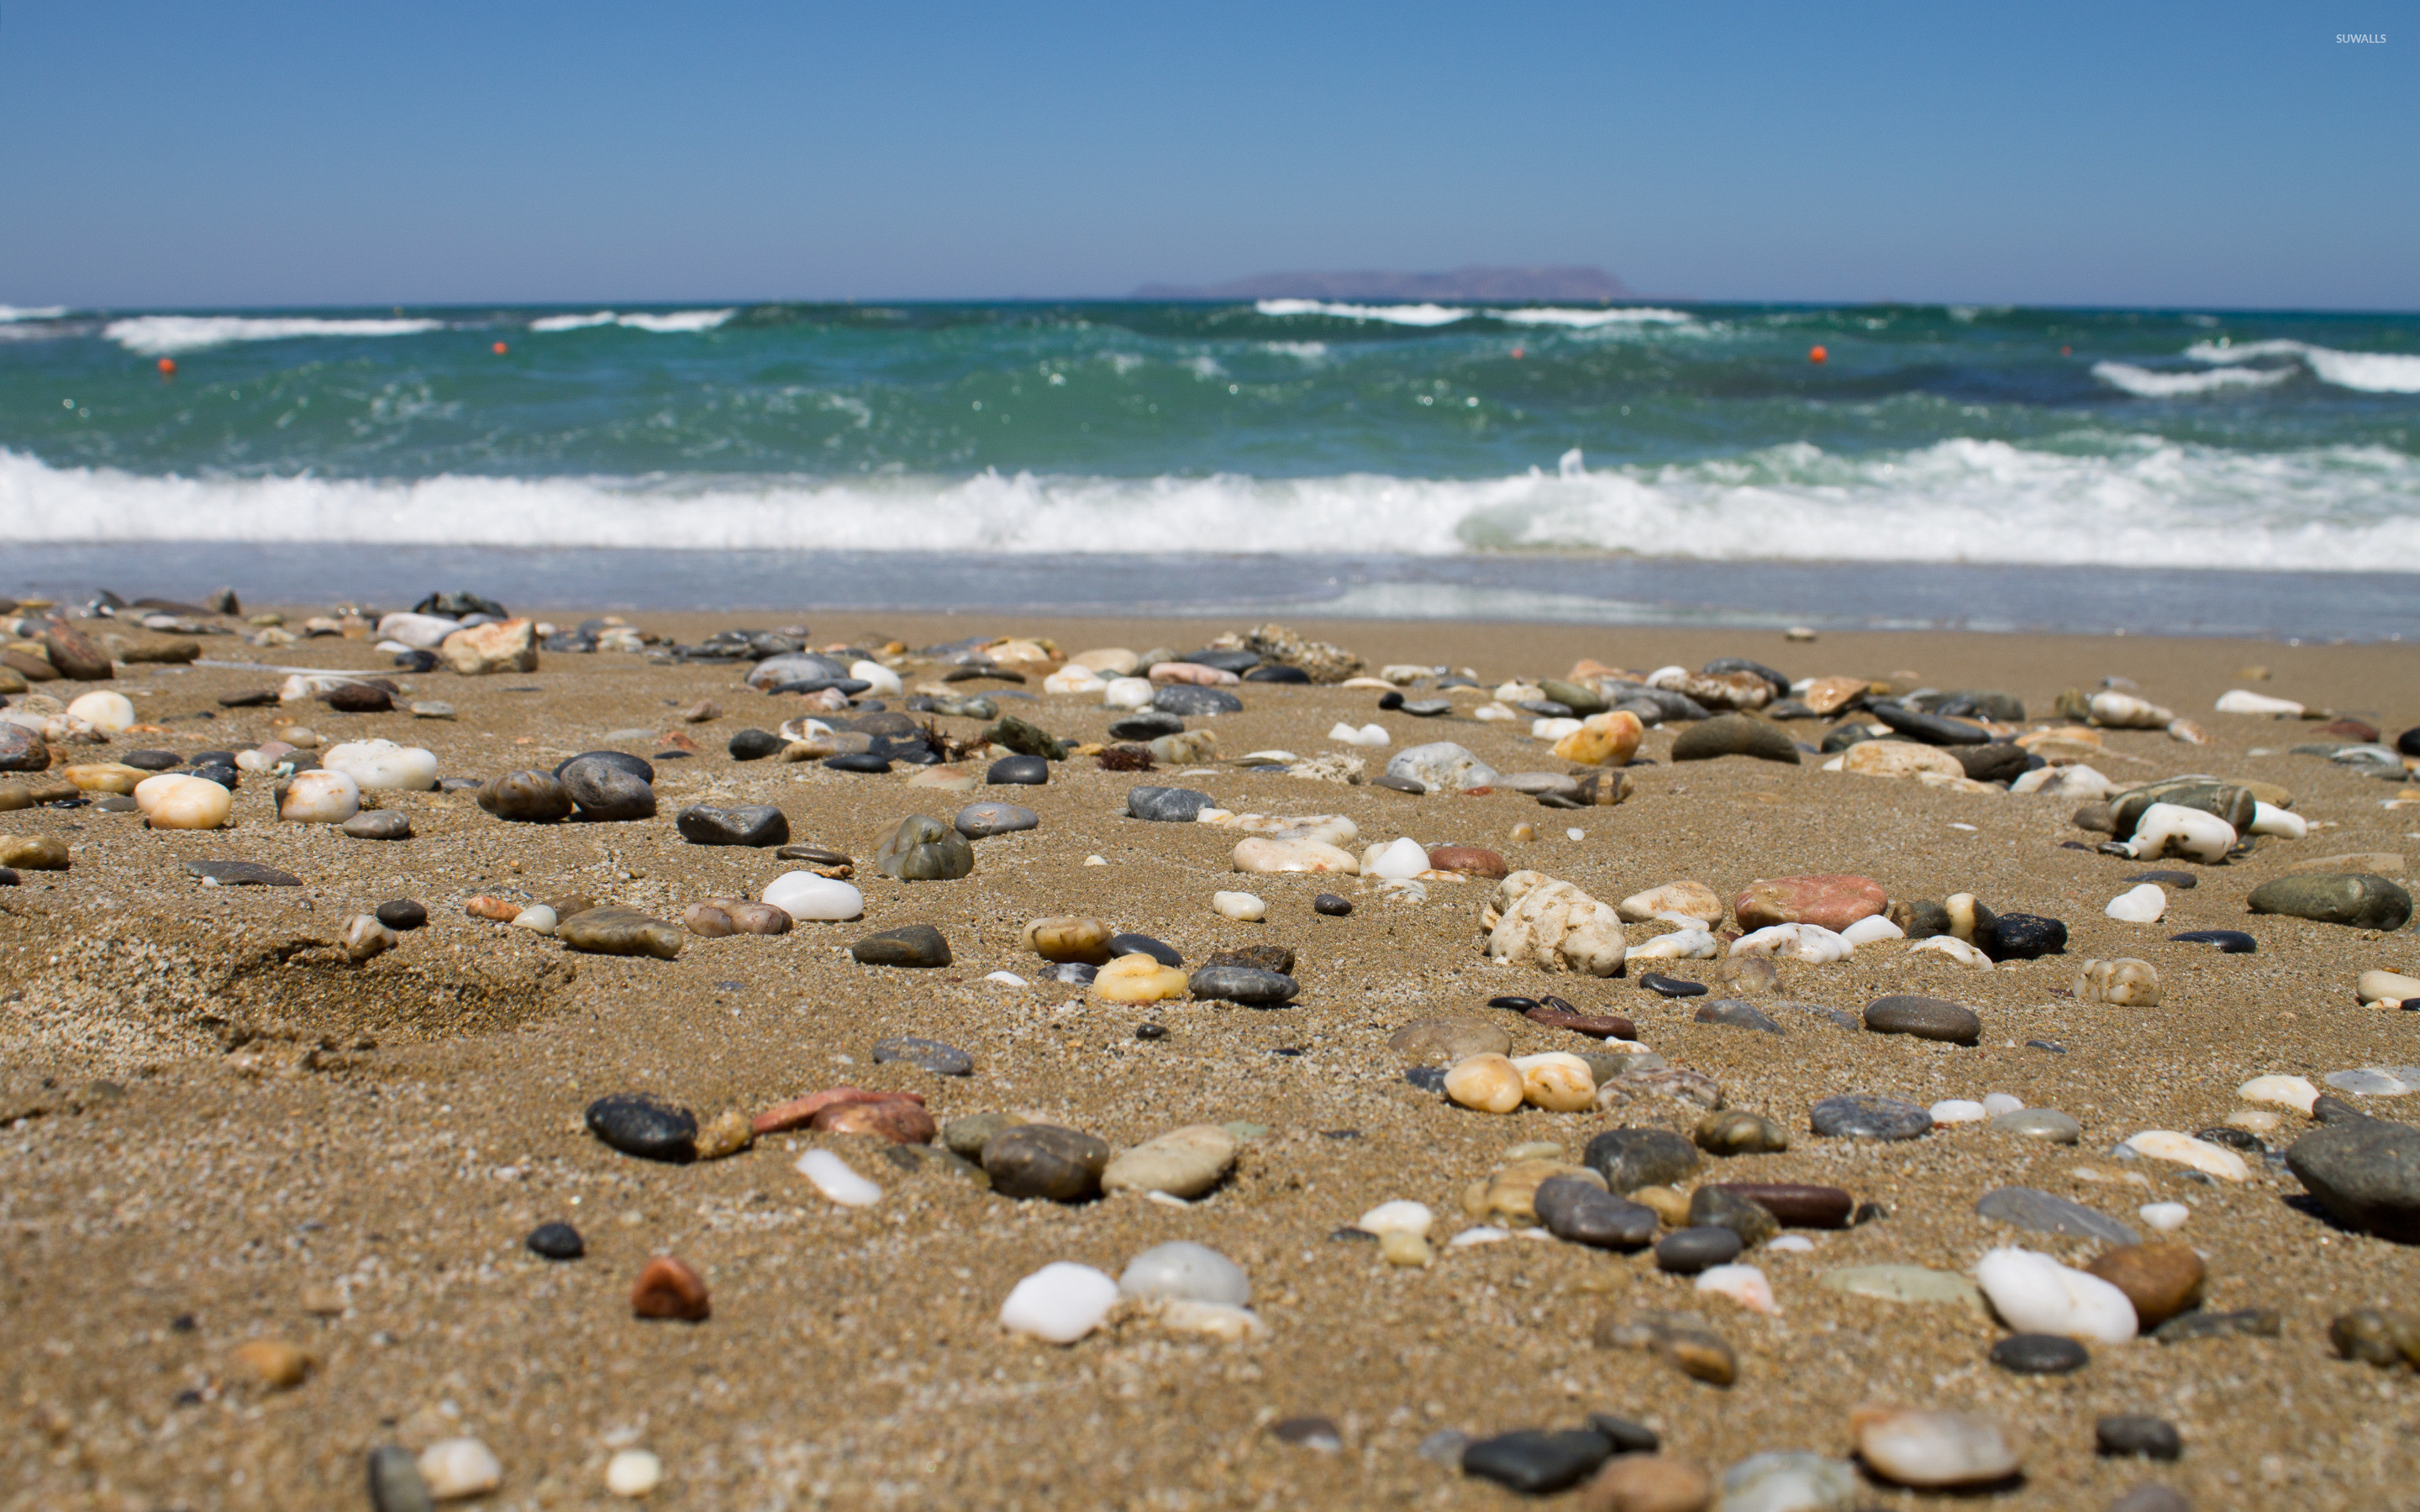 Res: 2880x1800, Pebbles on the sandy beach wallpaper